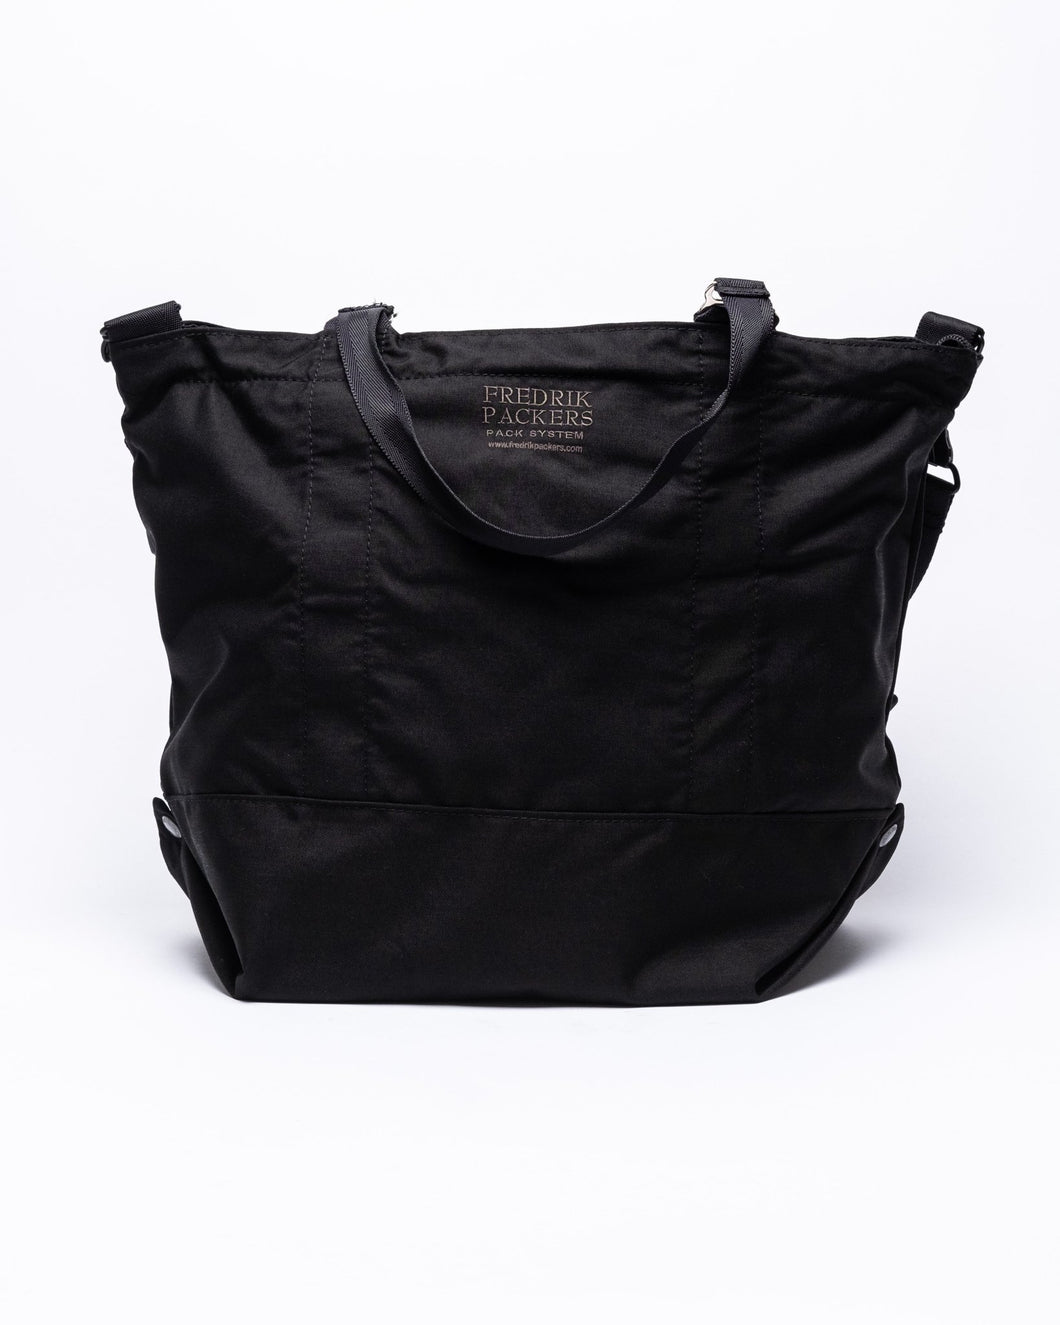 Modulation Tote Bag Black - Meadow of Malmö